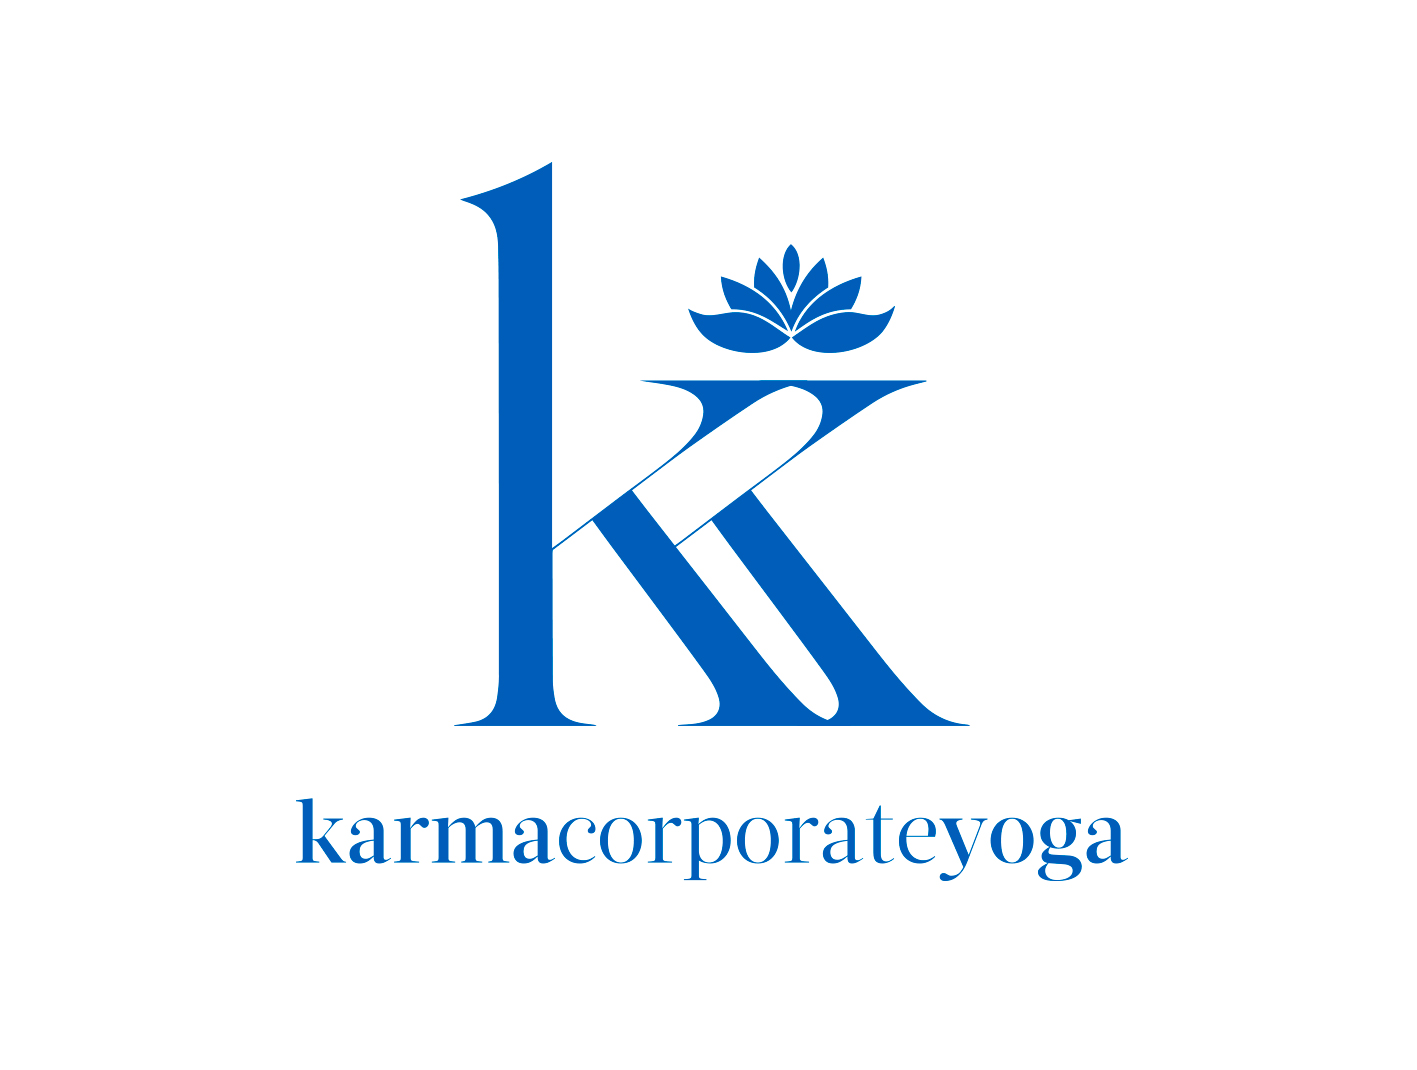 Karma-Corporate-Yoga-logo-2